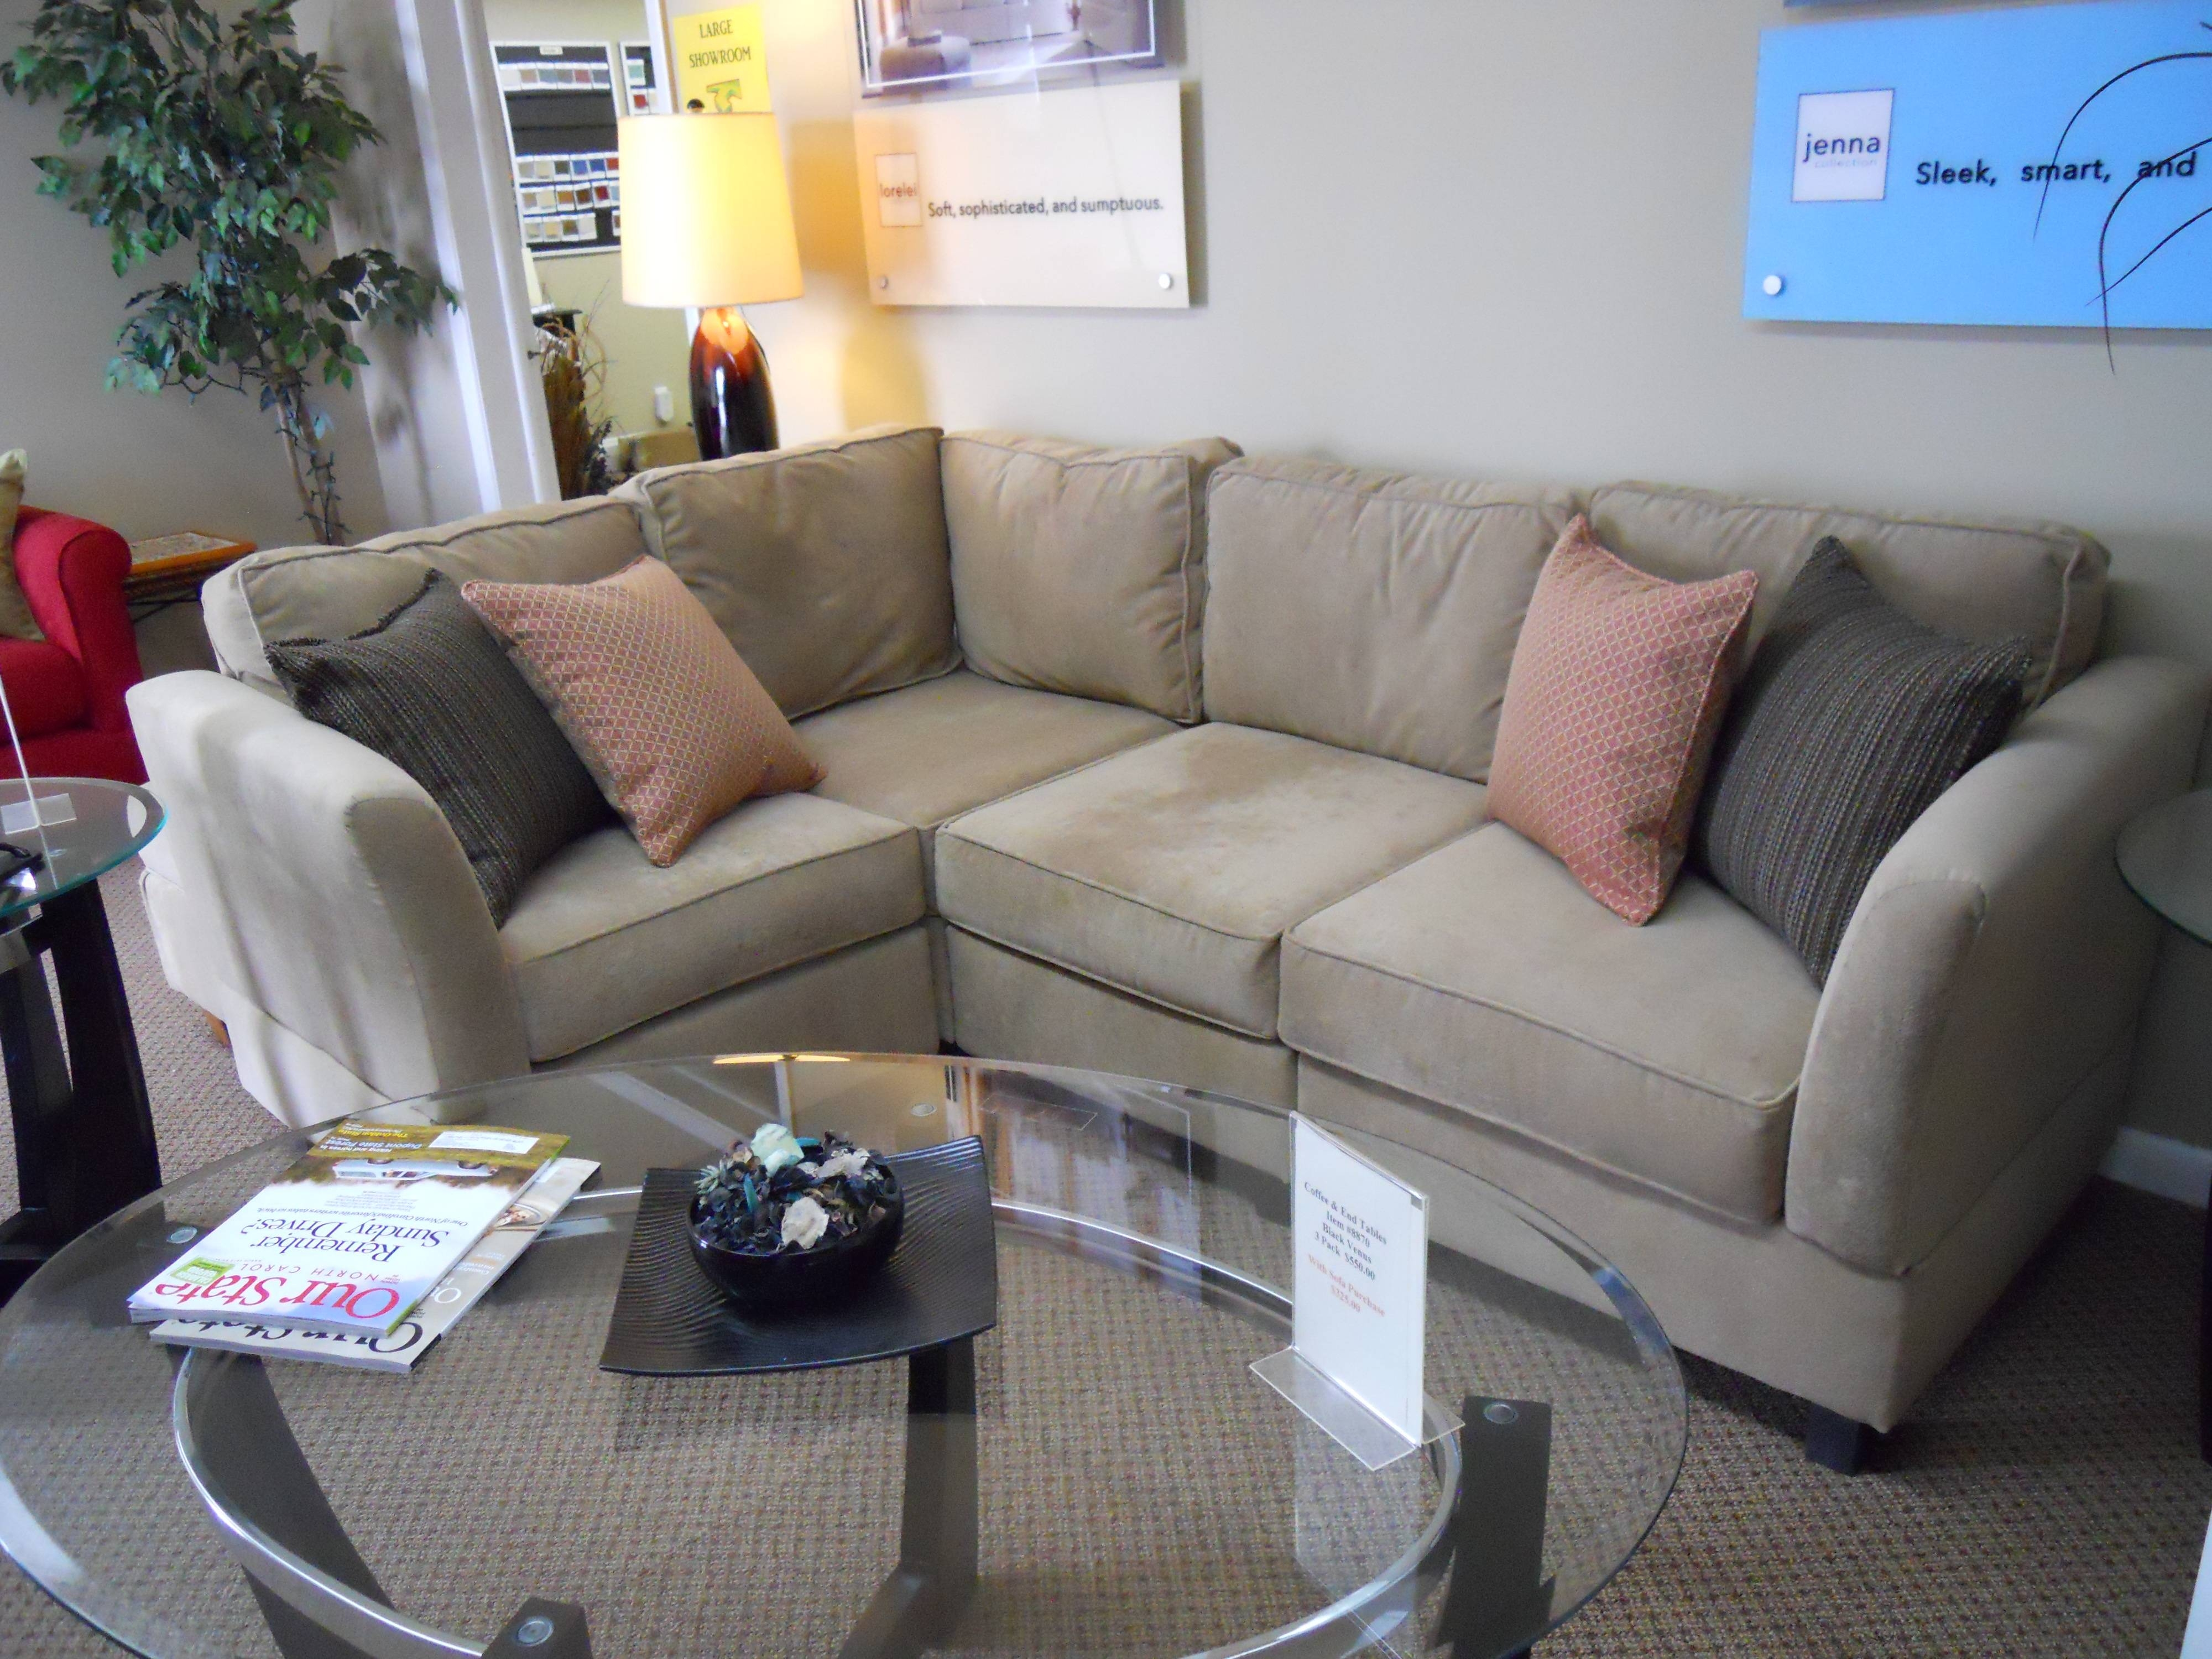 Modular Sectional Sofas Small Scale | Centerfieldbar throughout Small Scale Leather Sectional Sofas (Image 8 of 15)